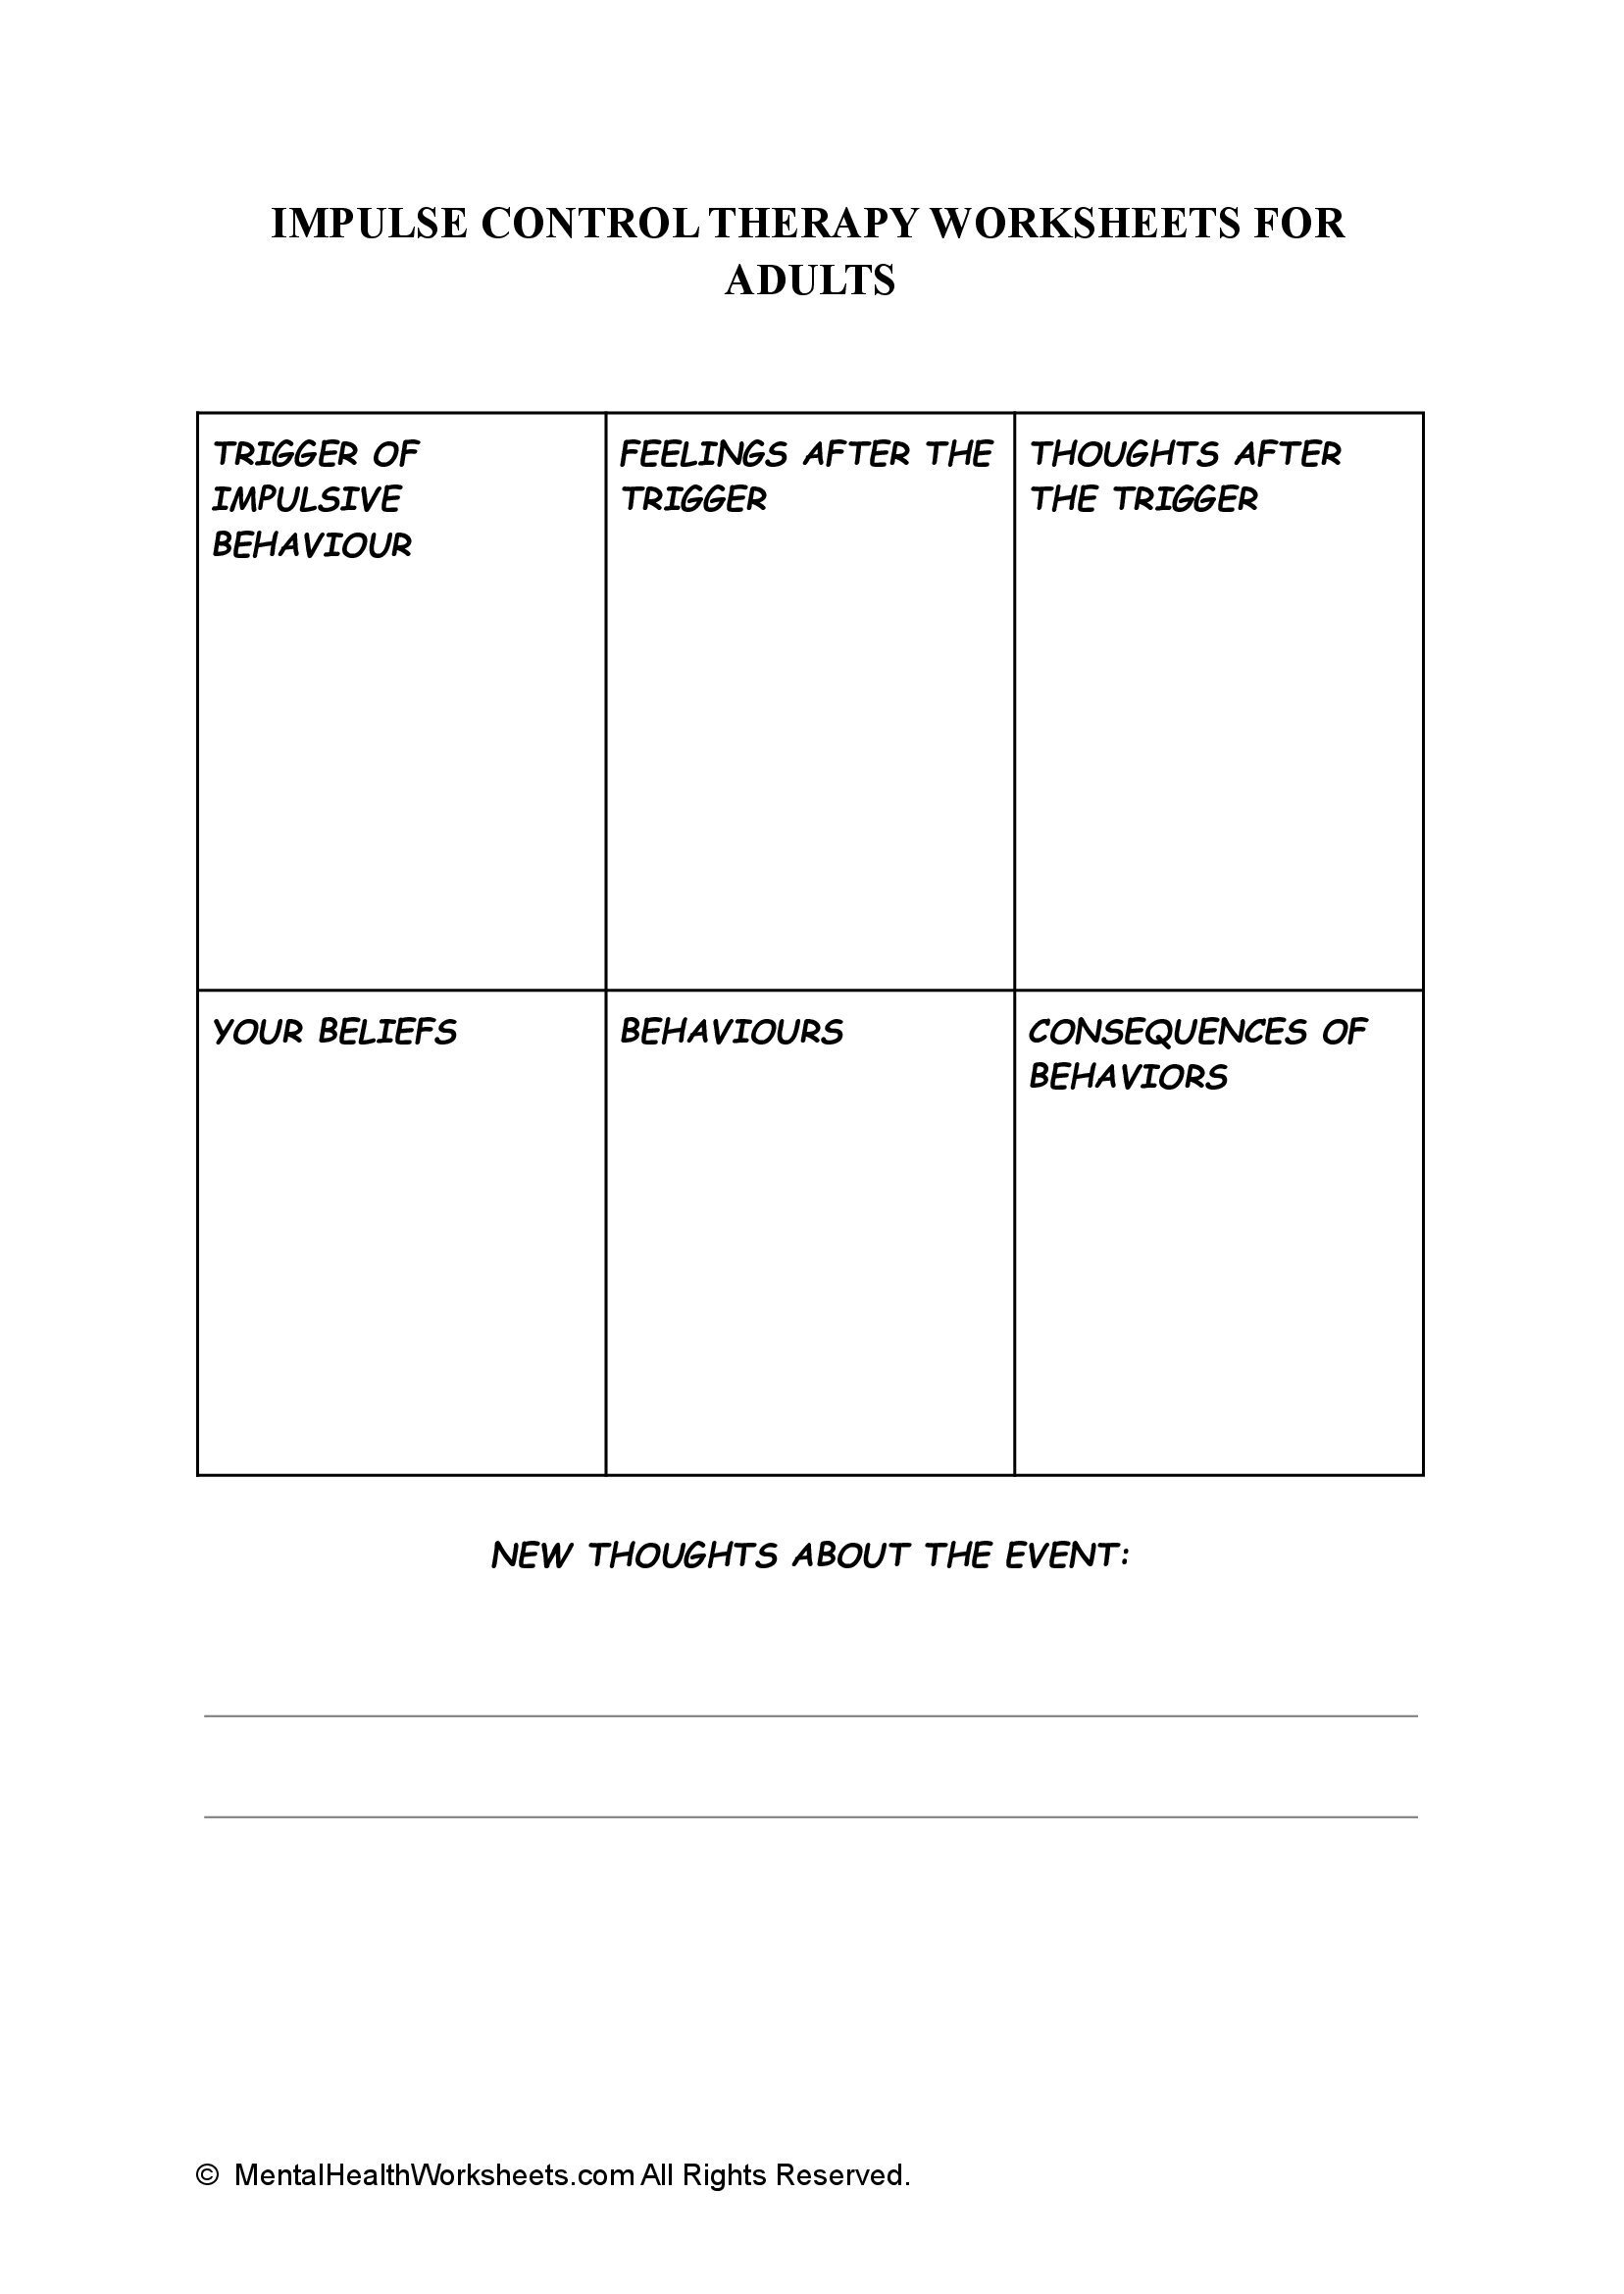 IMPULSE CONTROL THERAPY WORKSHEETS FOR ADULTS